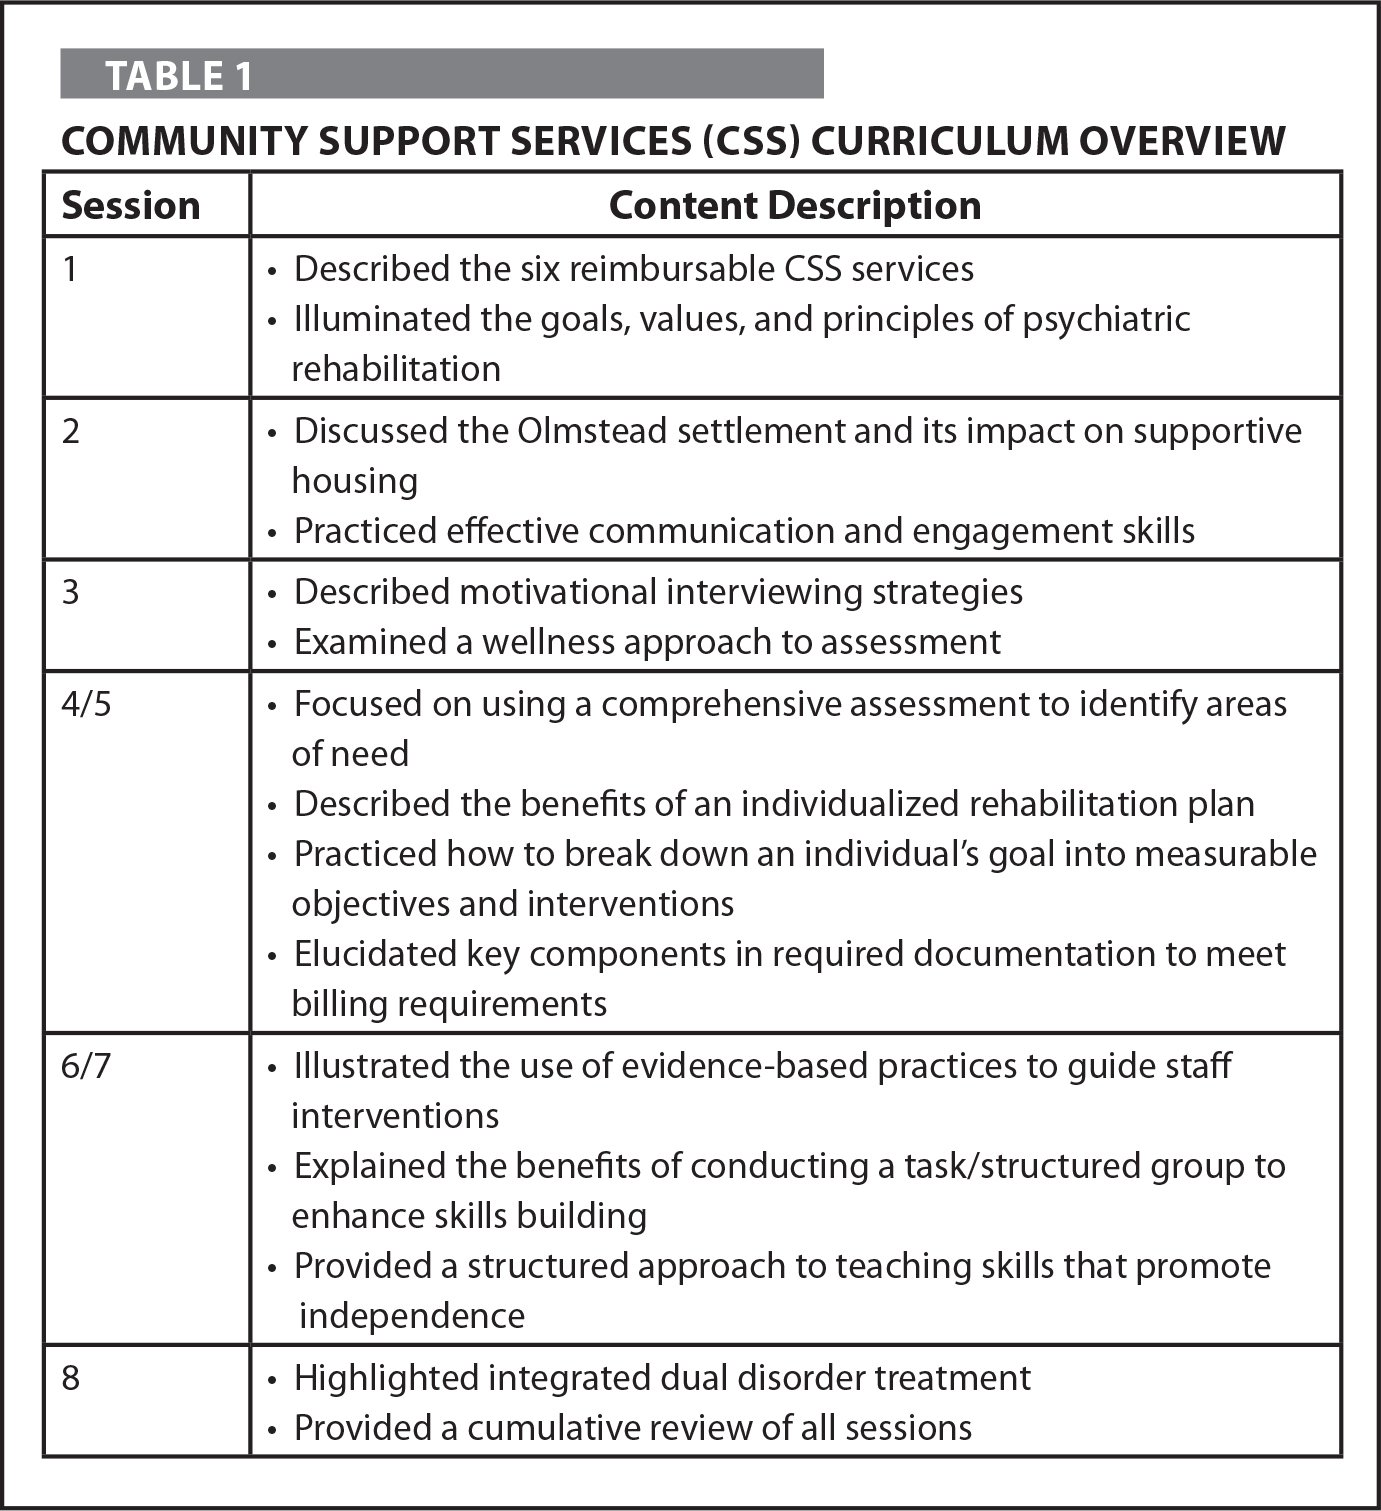 Community Support Services (CSS) Curriculum Overview